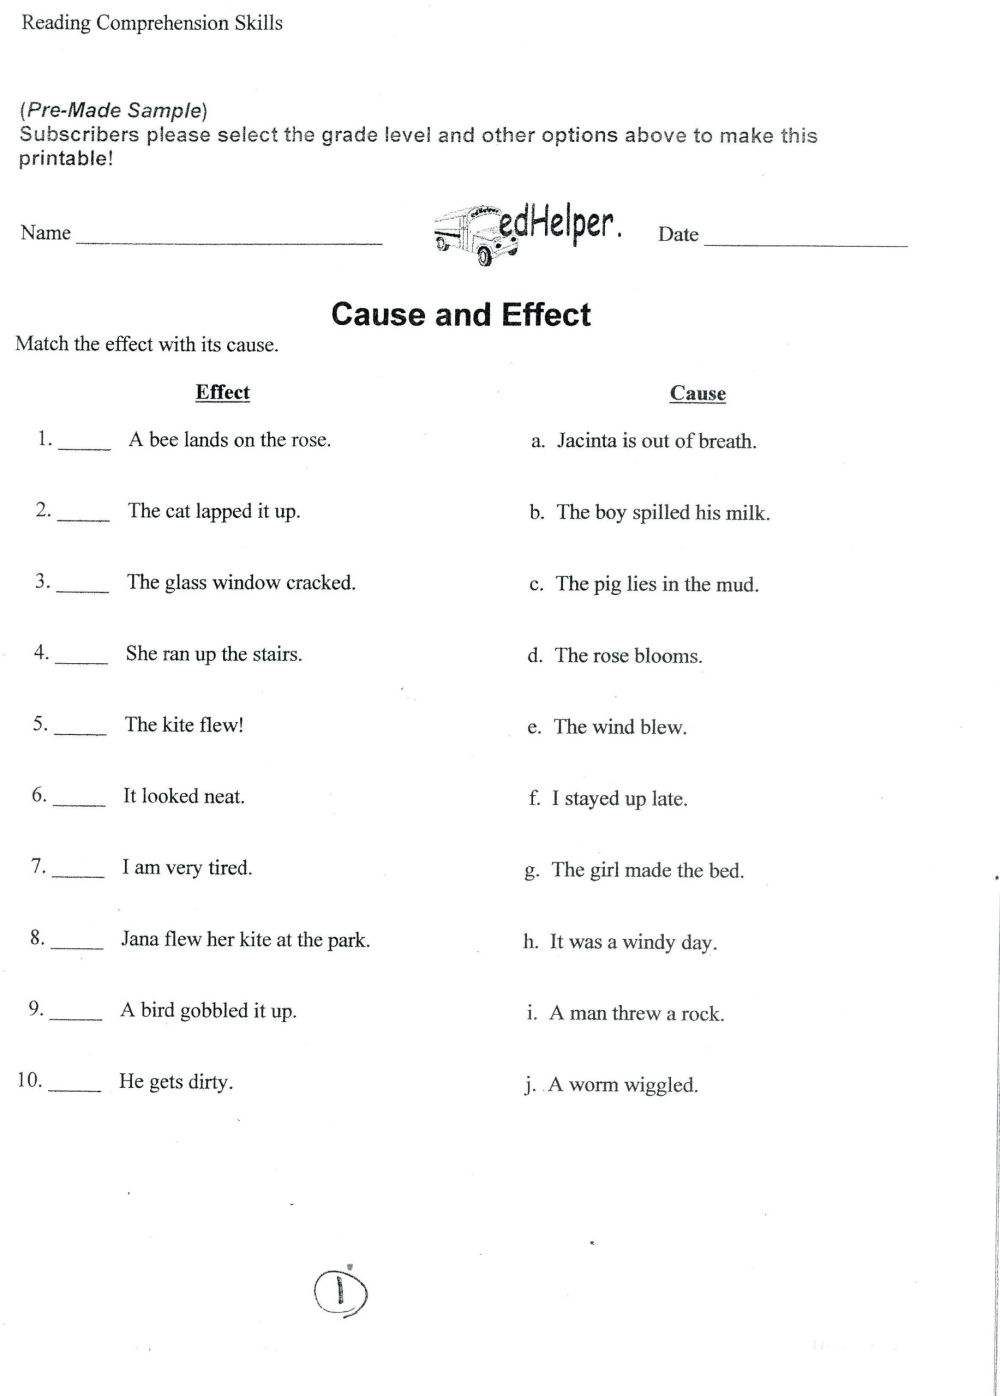 medium resolution of 5 Reading Comprehension Worksheets Fourth Grade 4 -  apocalomegaproductions.com